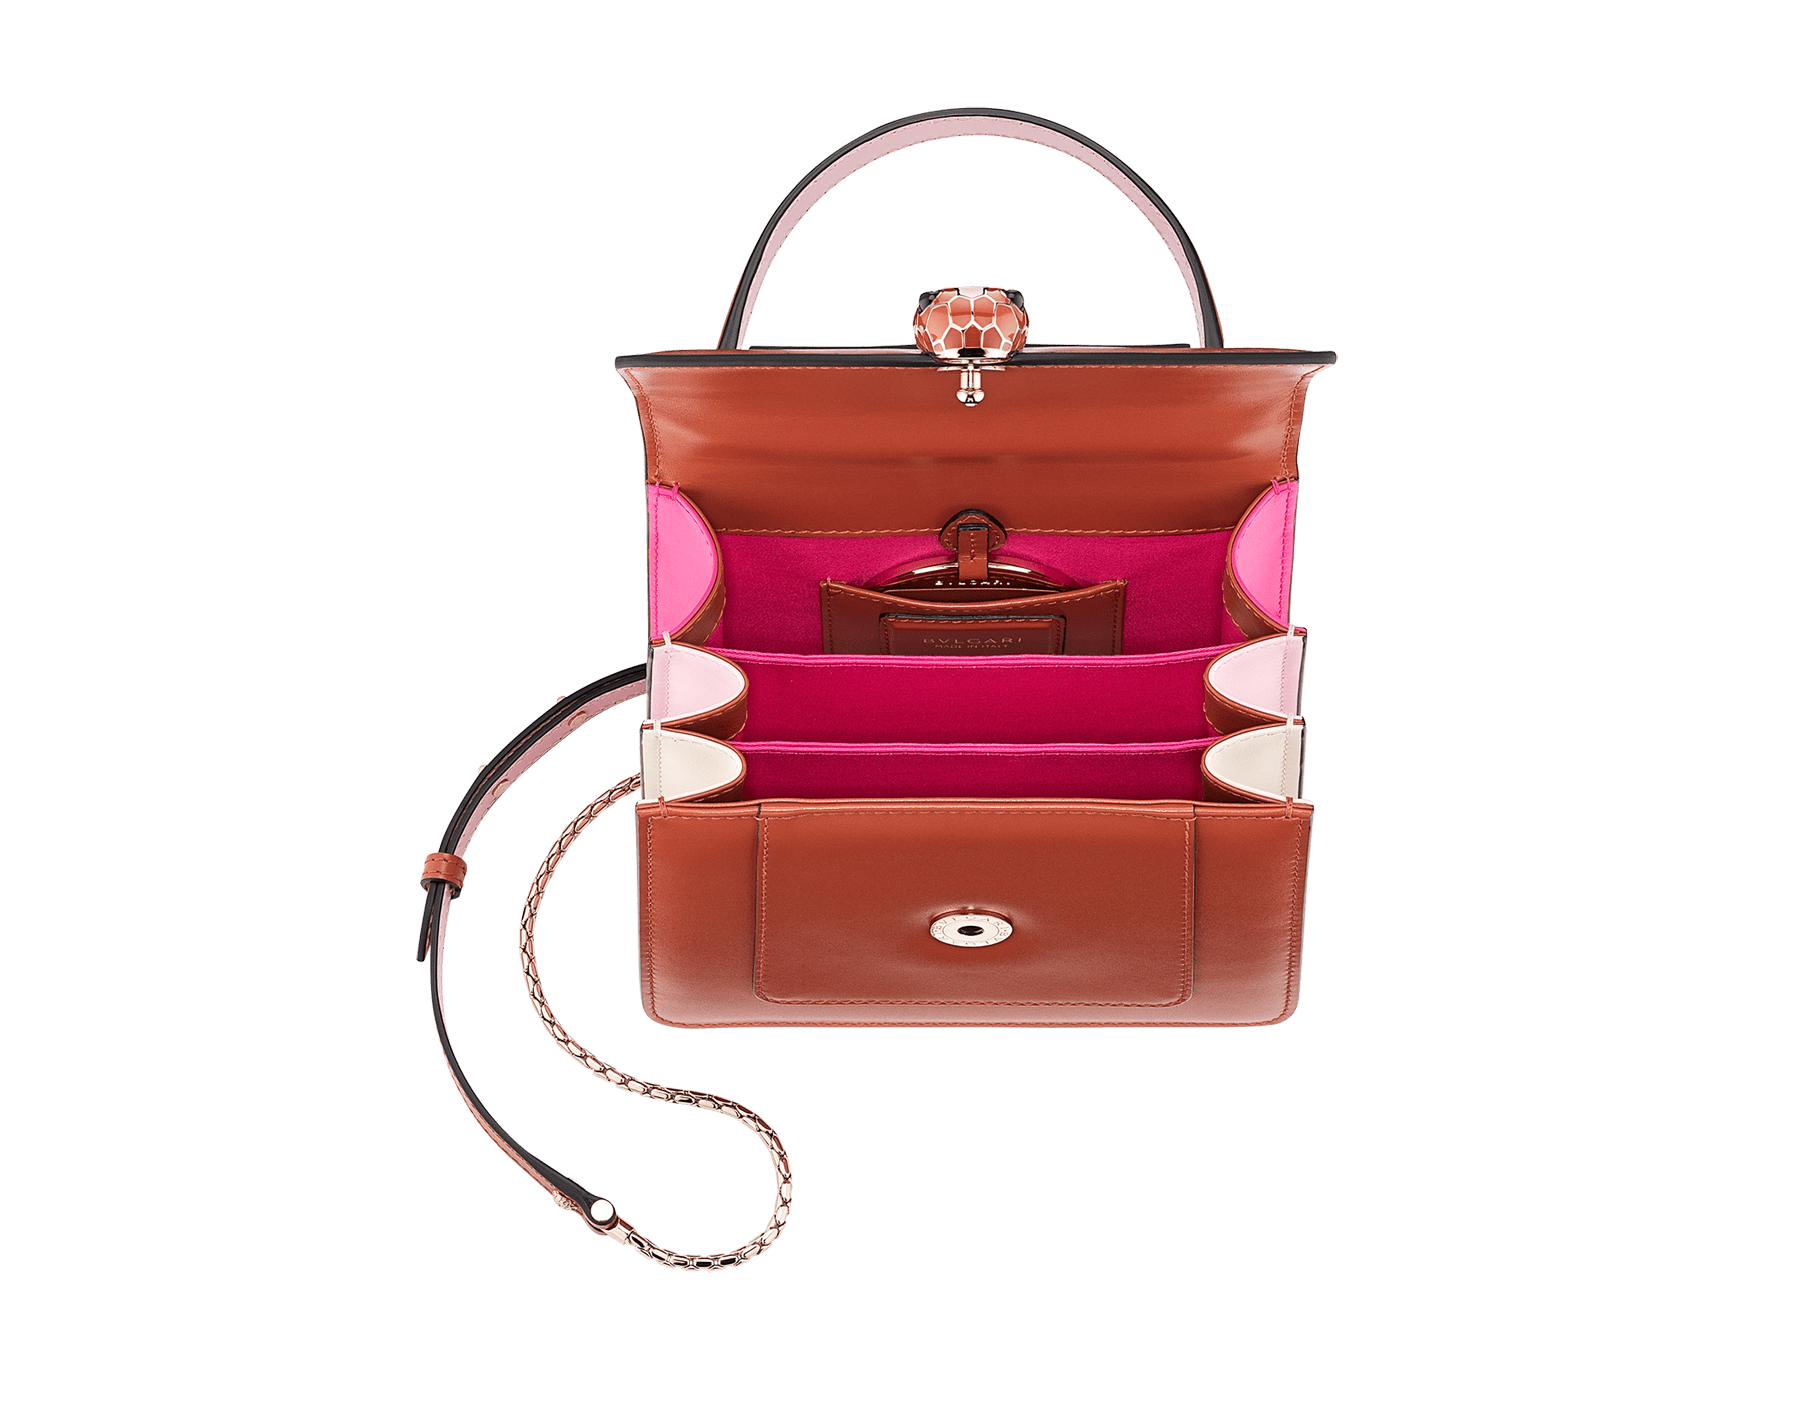 Serpenti Forever crossbody bag in imperial topaz calf leather with Roman garnet, rosa di francia and white agate calf leather sides. Iconic snakehead closure in light gold plated brass embellished with imperial topaz and rosa di francia enamel and black onyx eyes. 288889 image 5